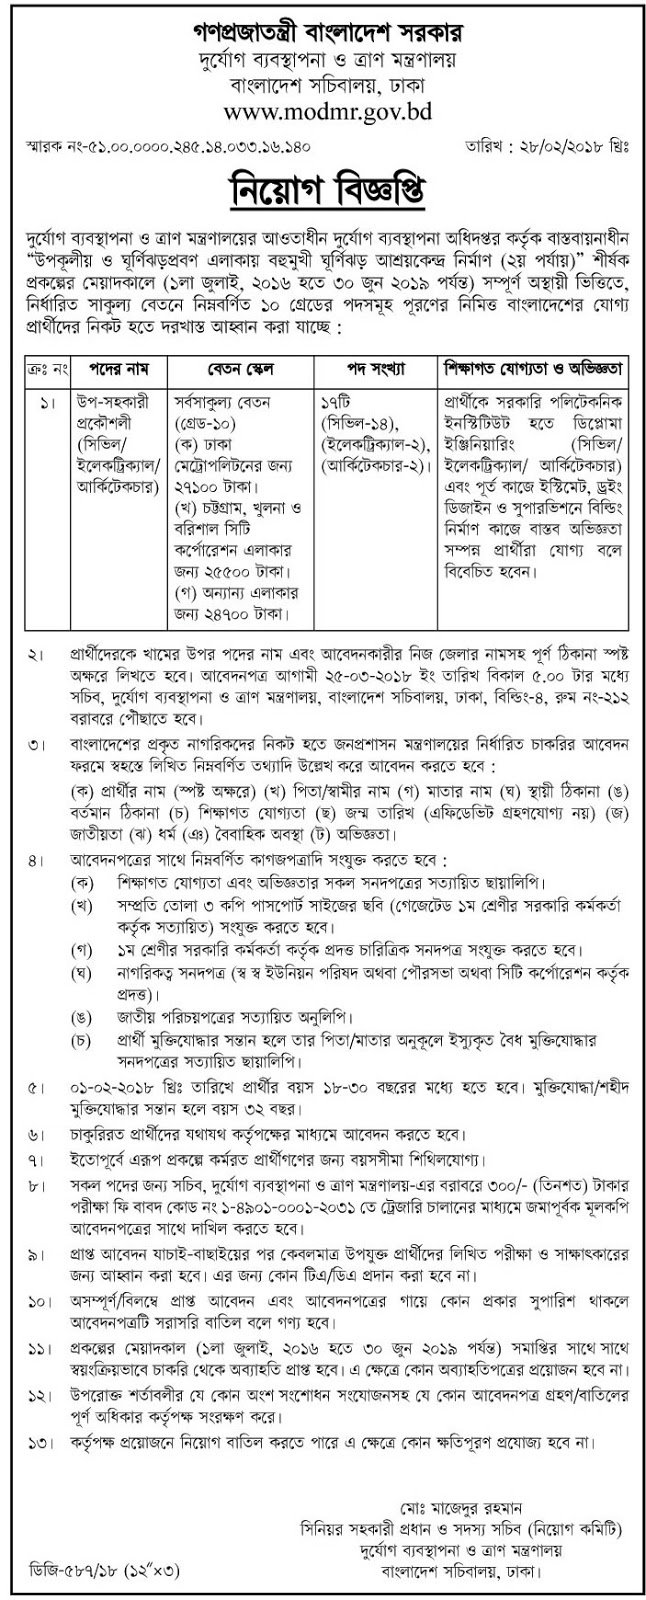 Ministry of Disaster Management and Relief (MODMR) Job Circular 2018